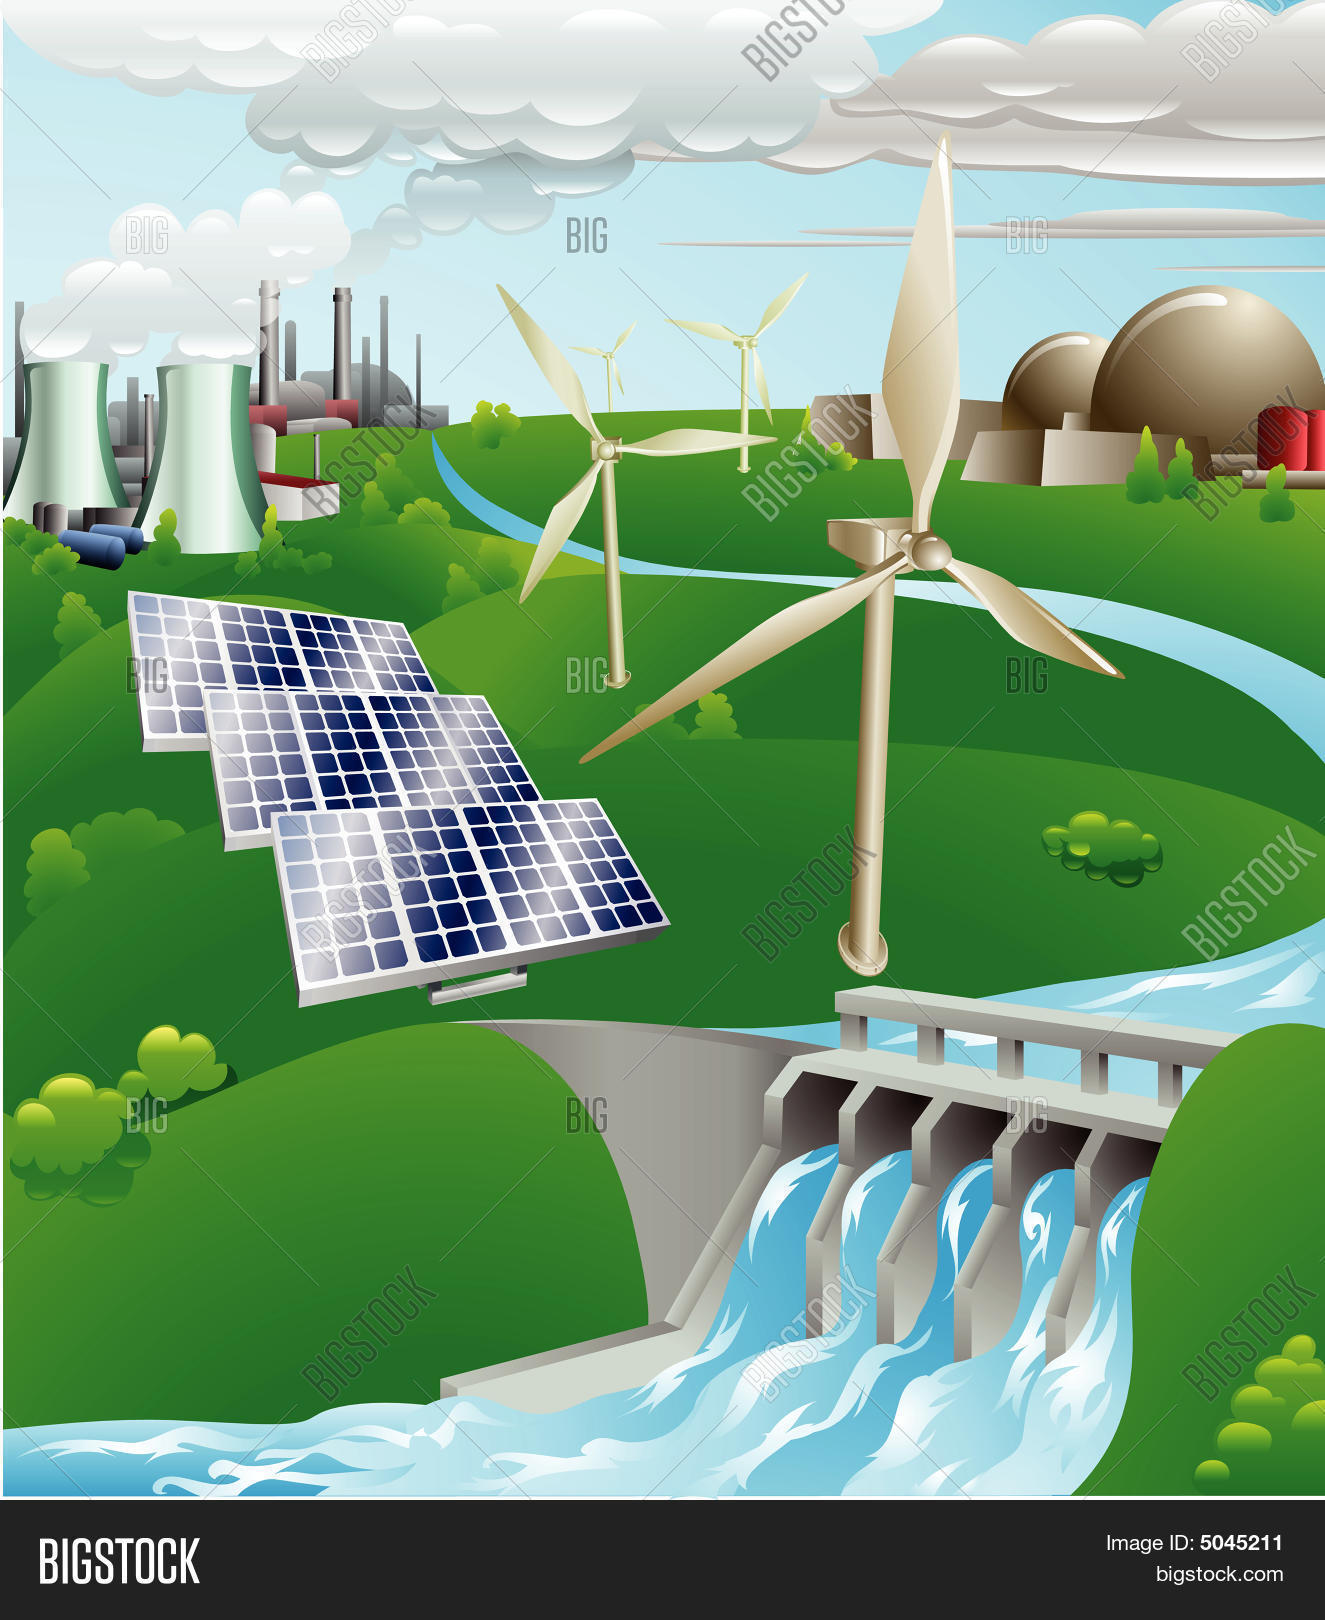 Electricity Power Vector Photo Free Trial Bigstock